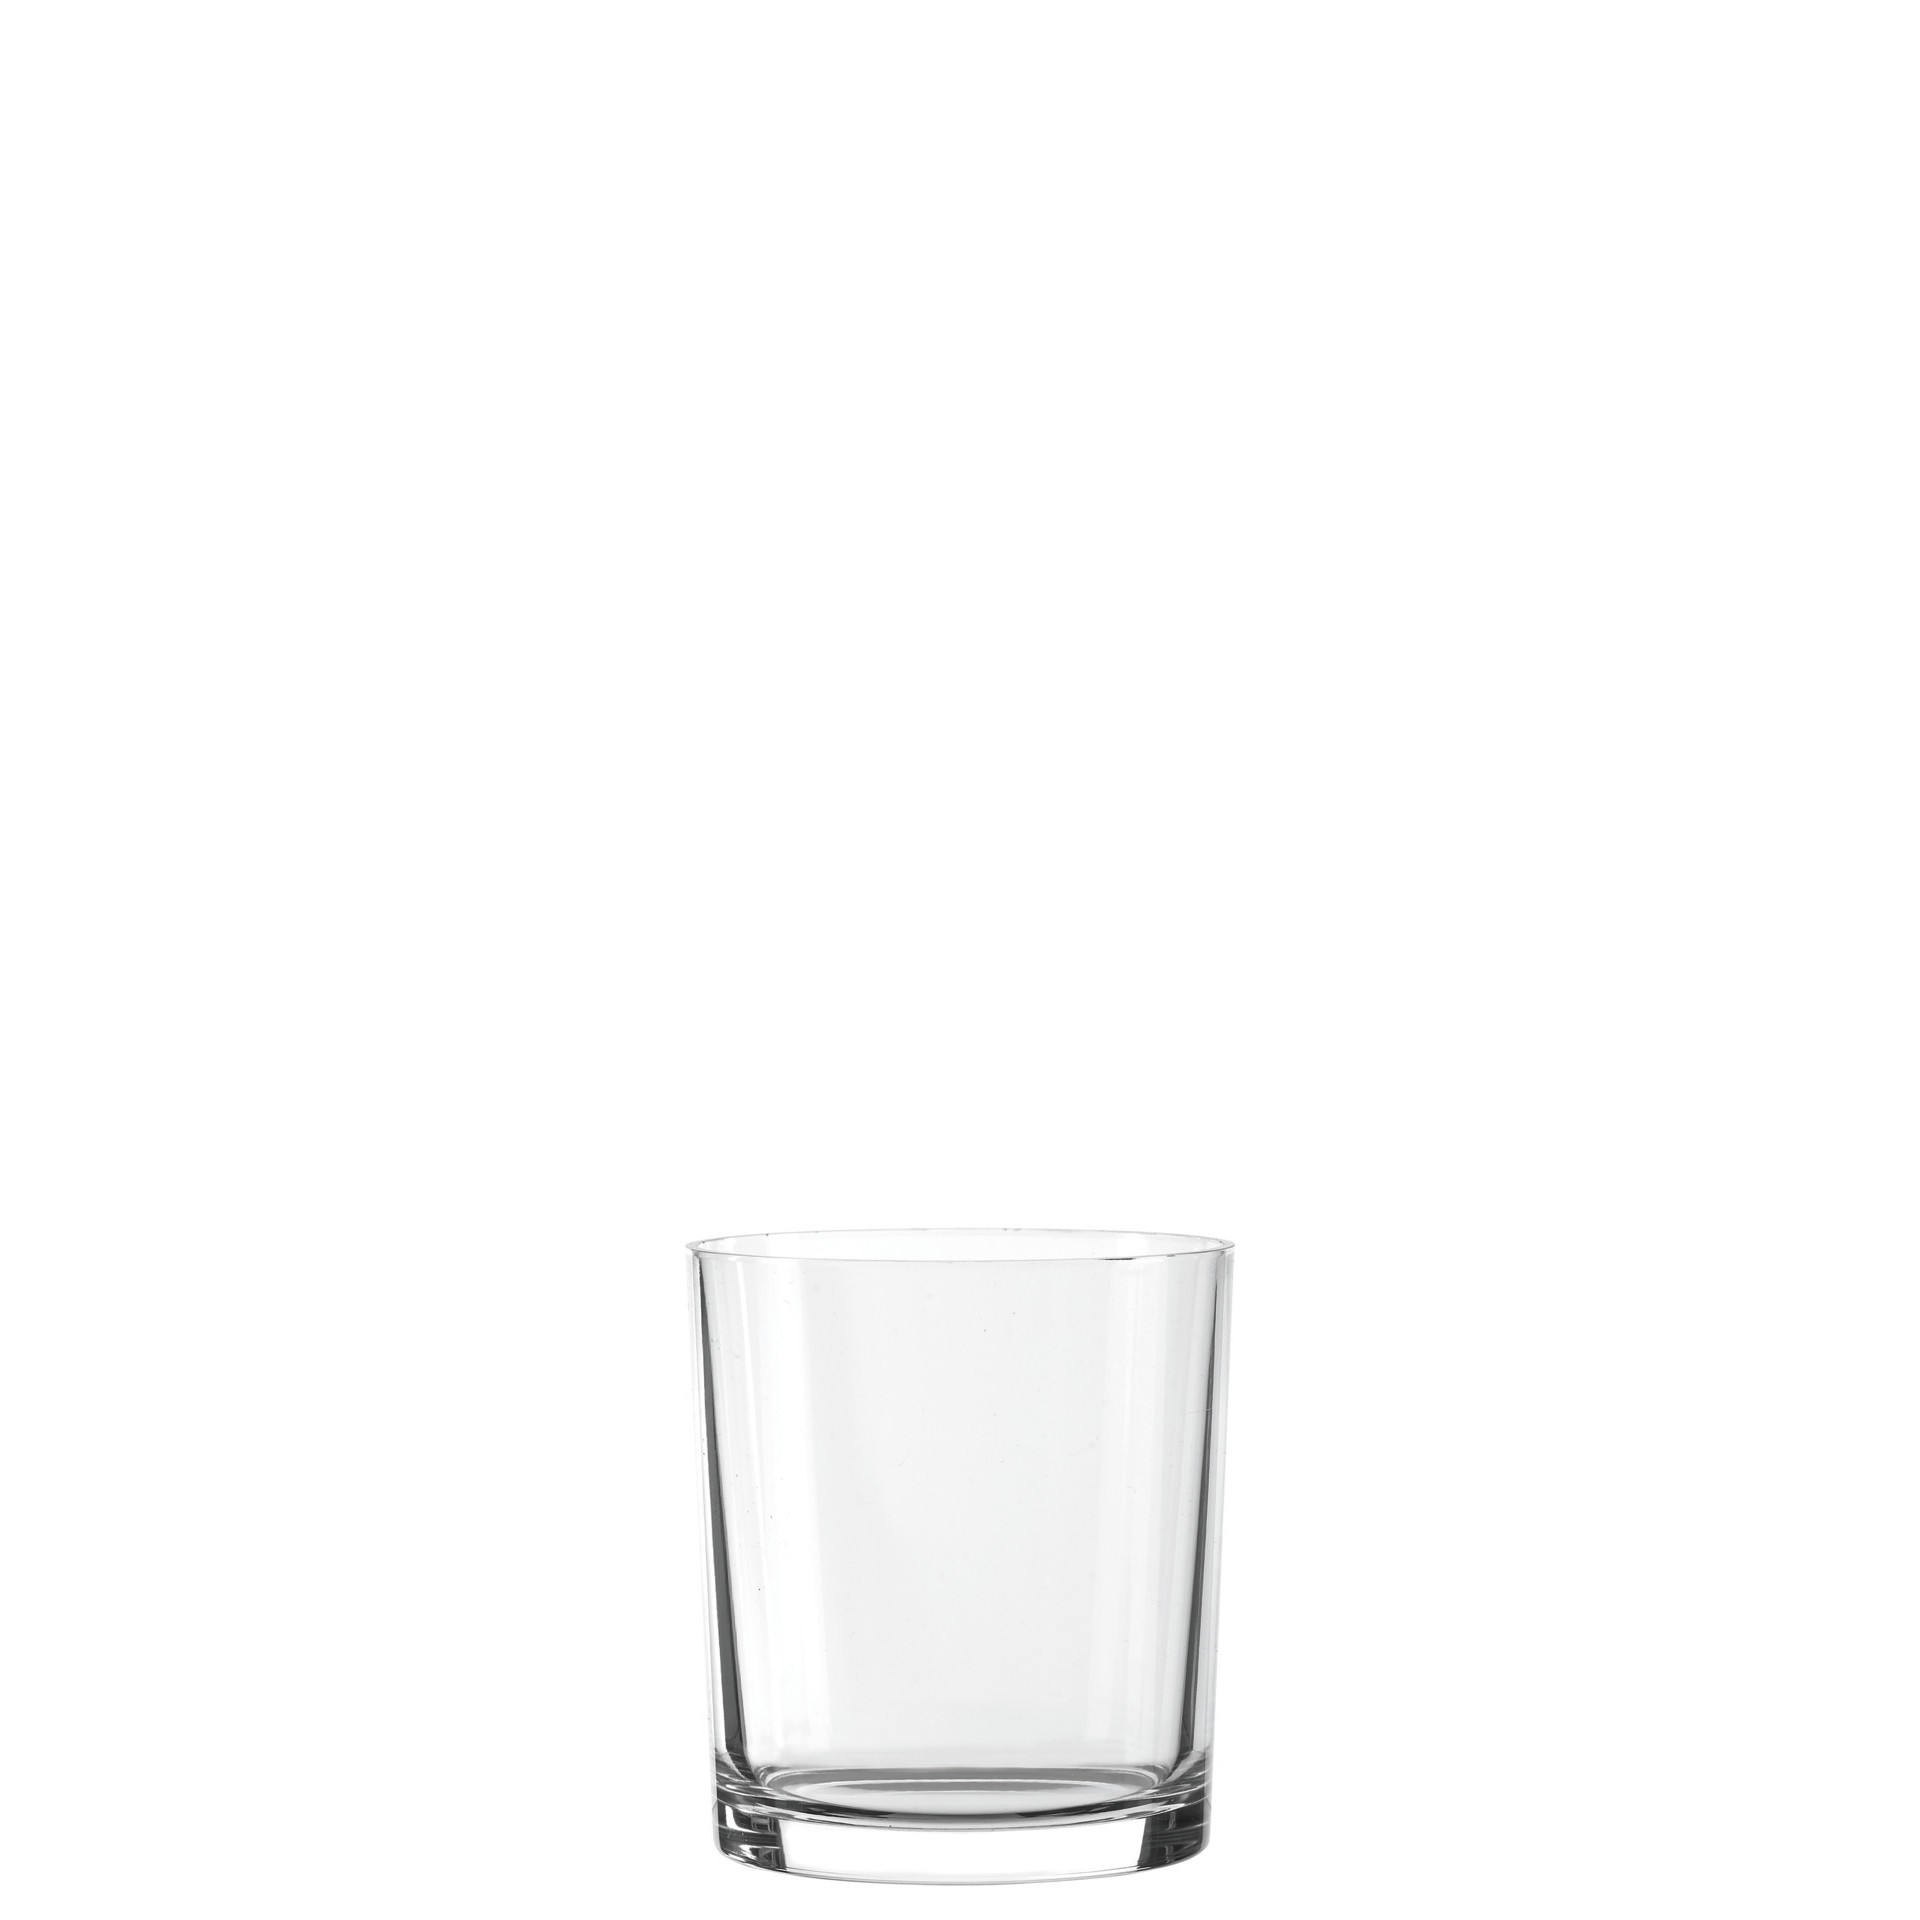 Club, Whiskyglas D.O.F. ø 86 mm / 0,37 l